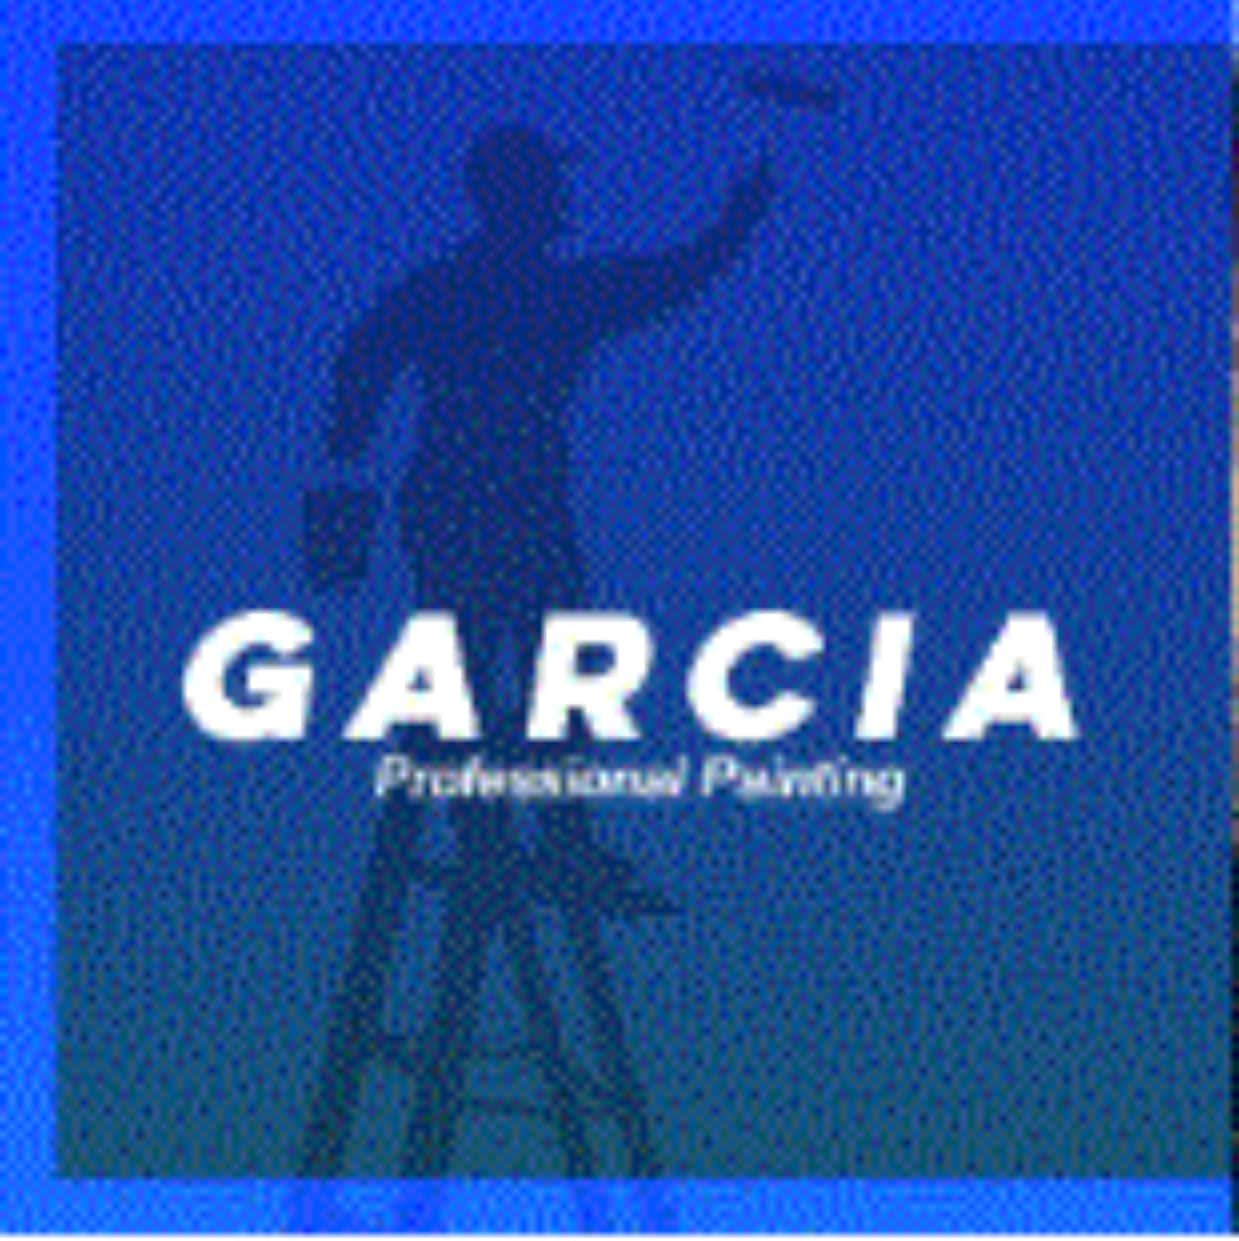 Garcia Professional Painting